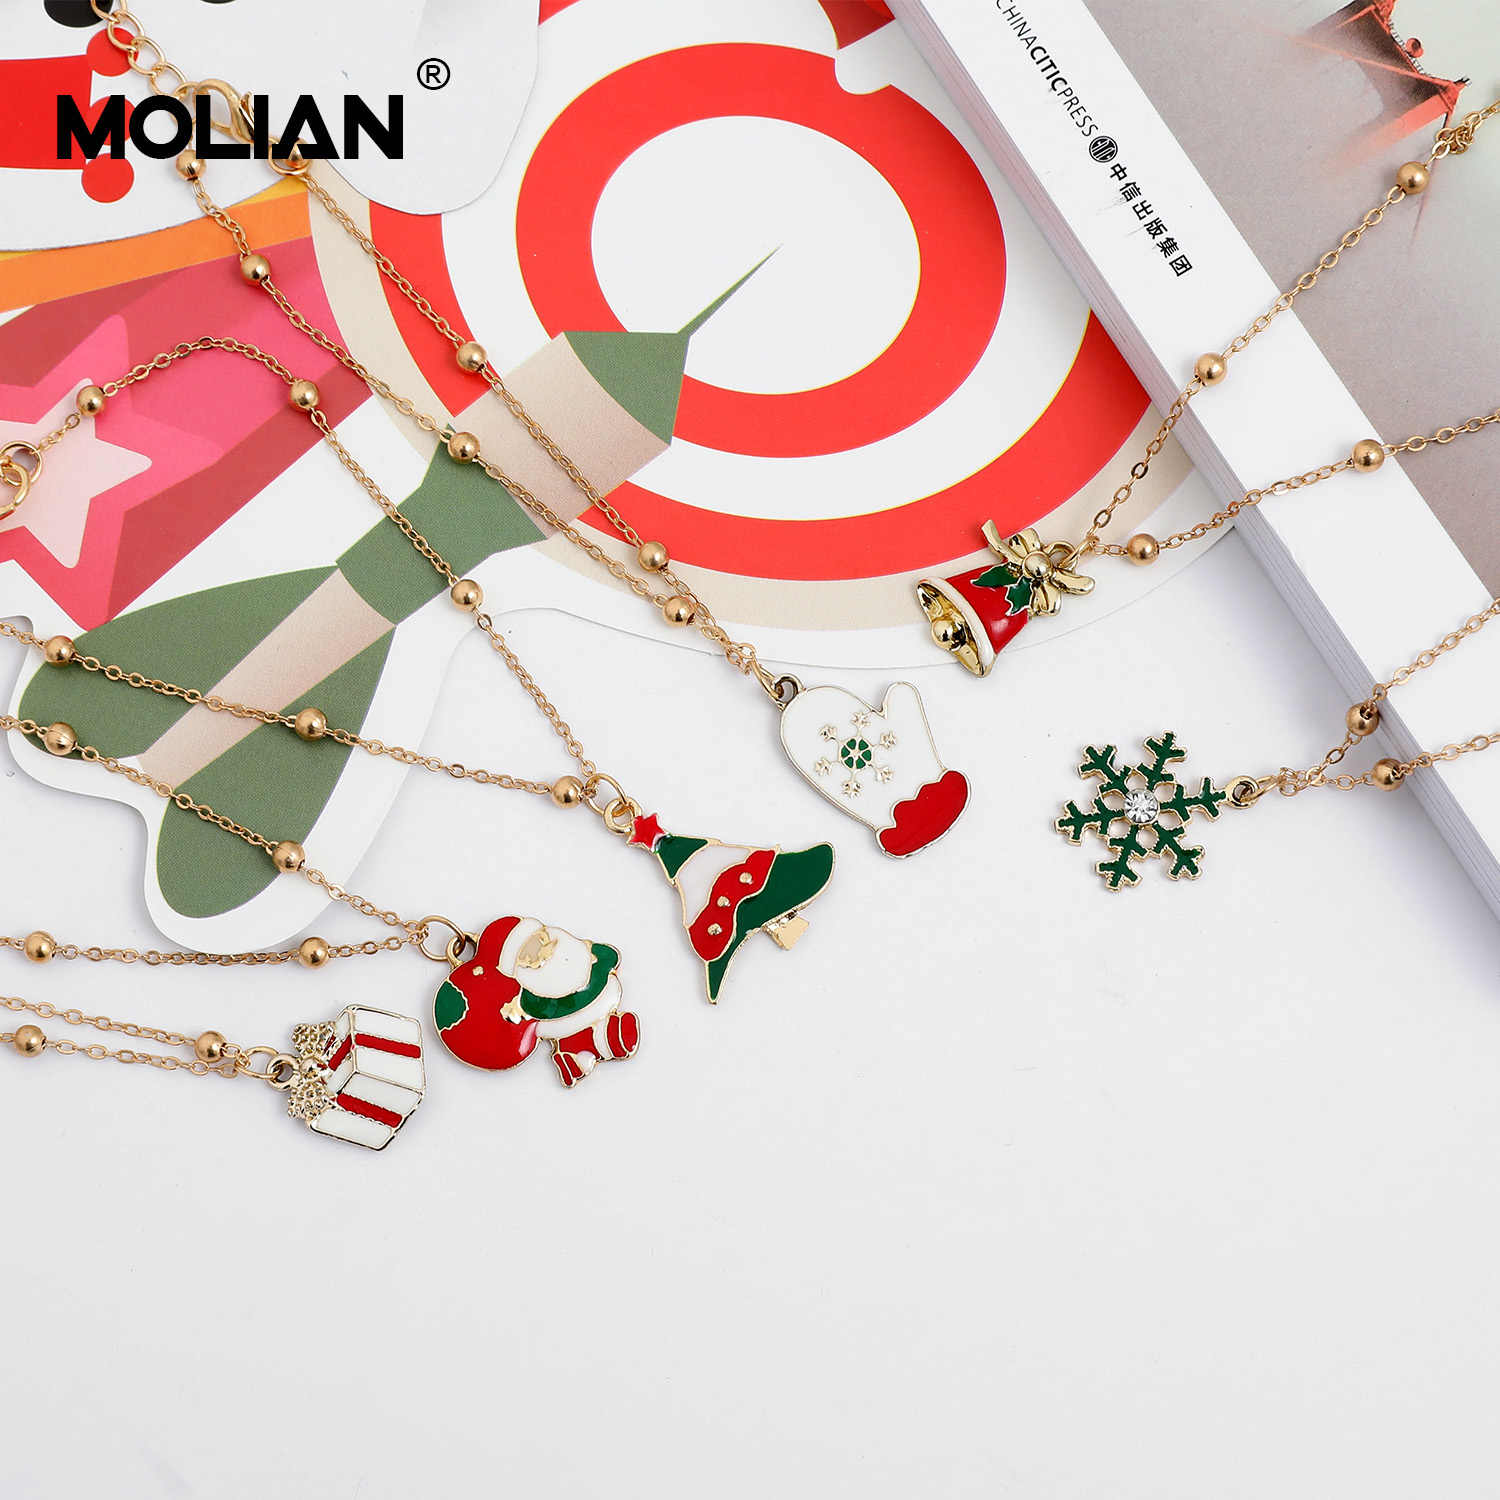 MOLIAN Christmas Bracelet Bangle Christmas tree Anklet Santa Claus Gold Bell jewelry for women snowflake gloves jewellery gifts